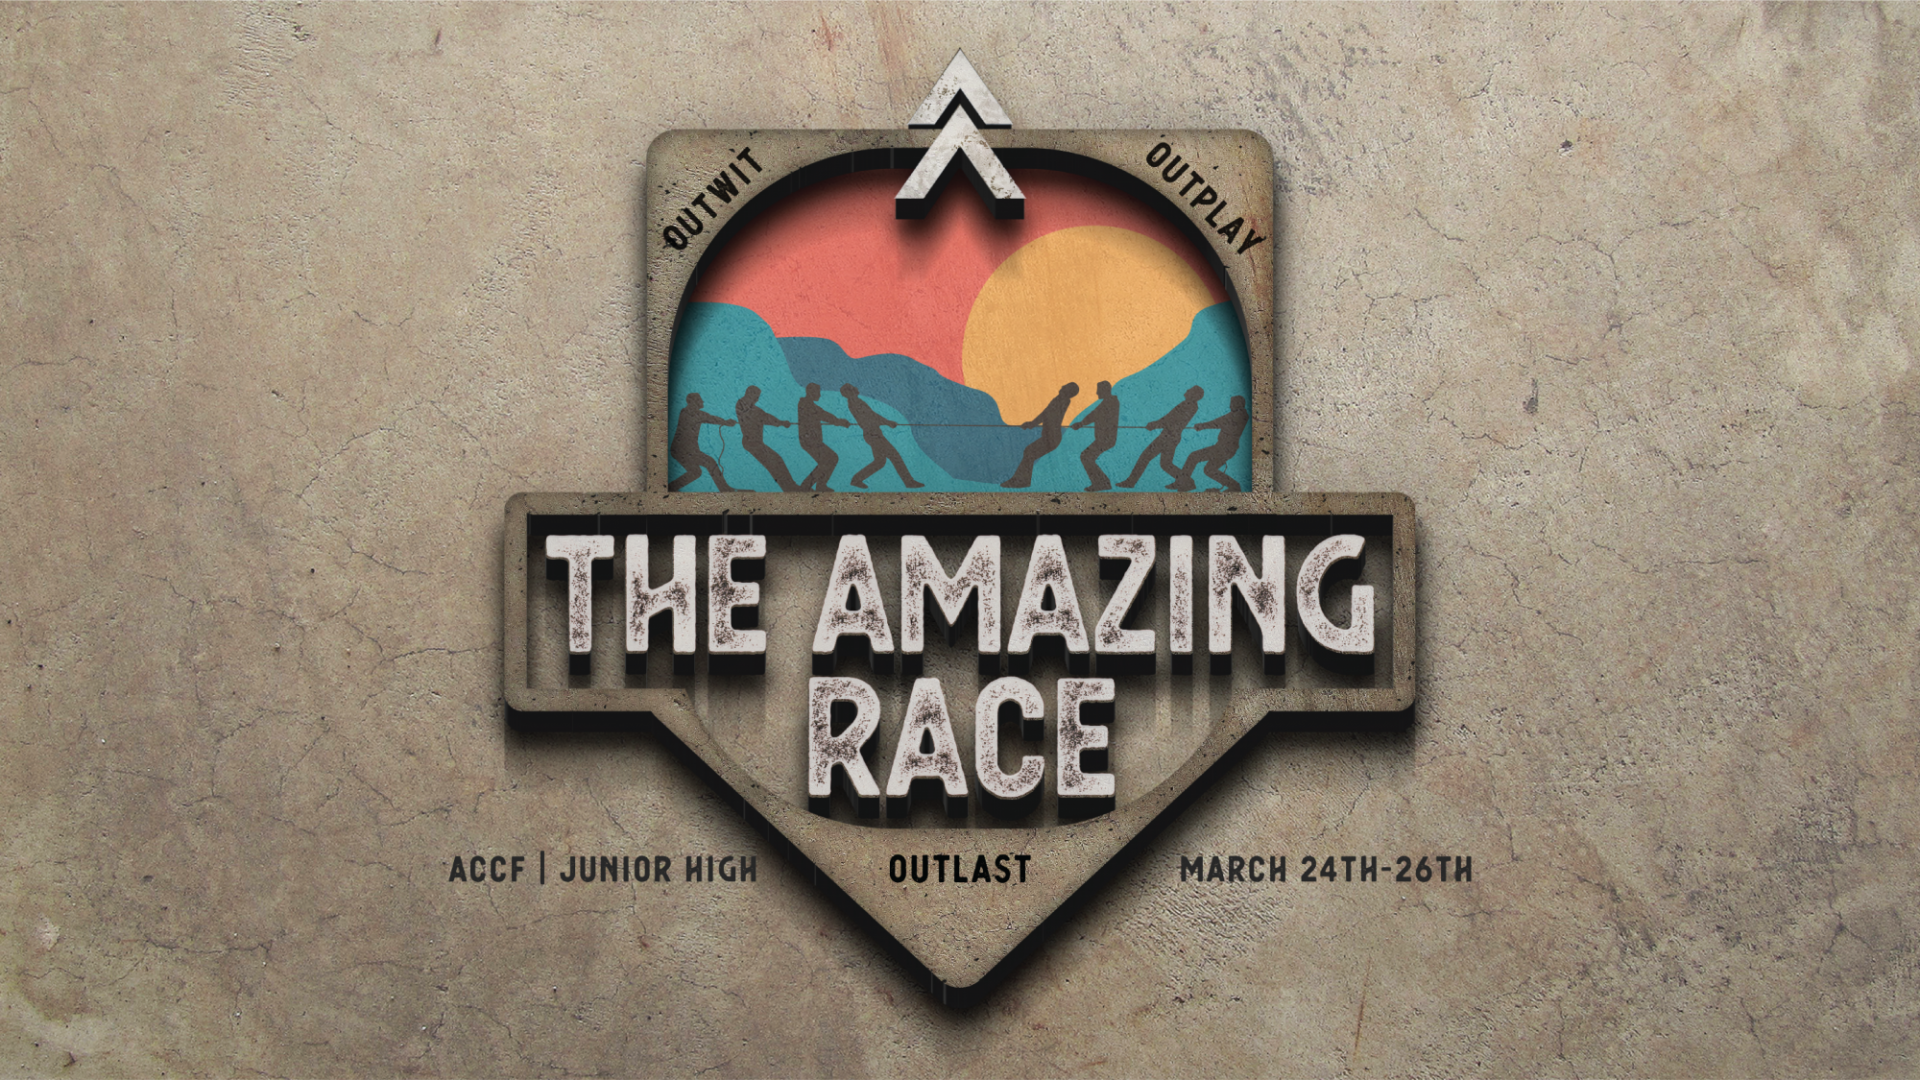 Poster for The Amazing Race